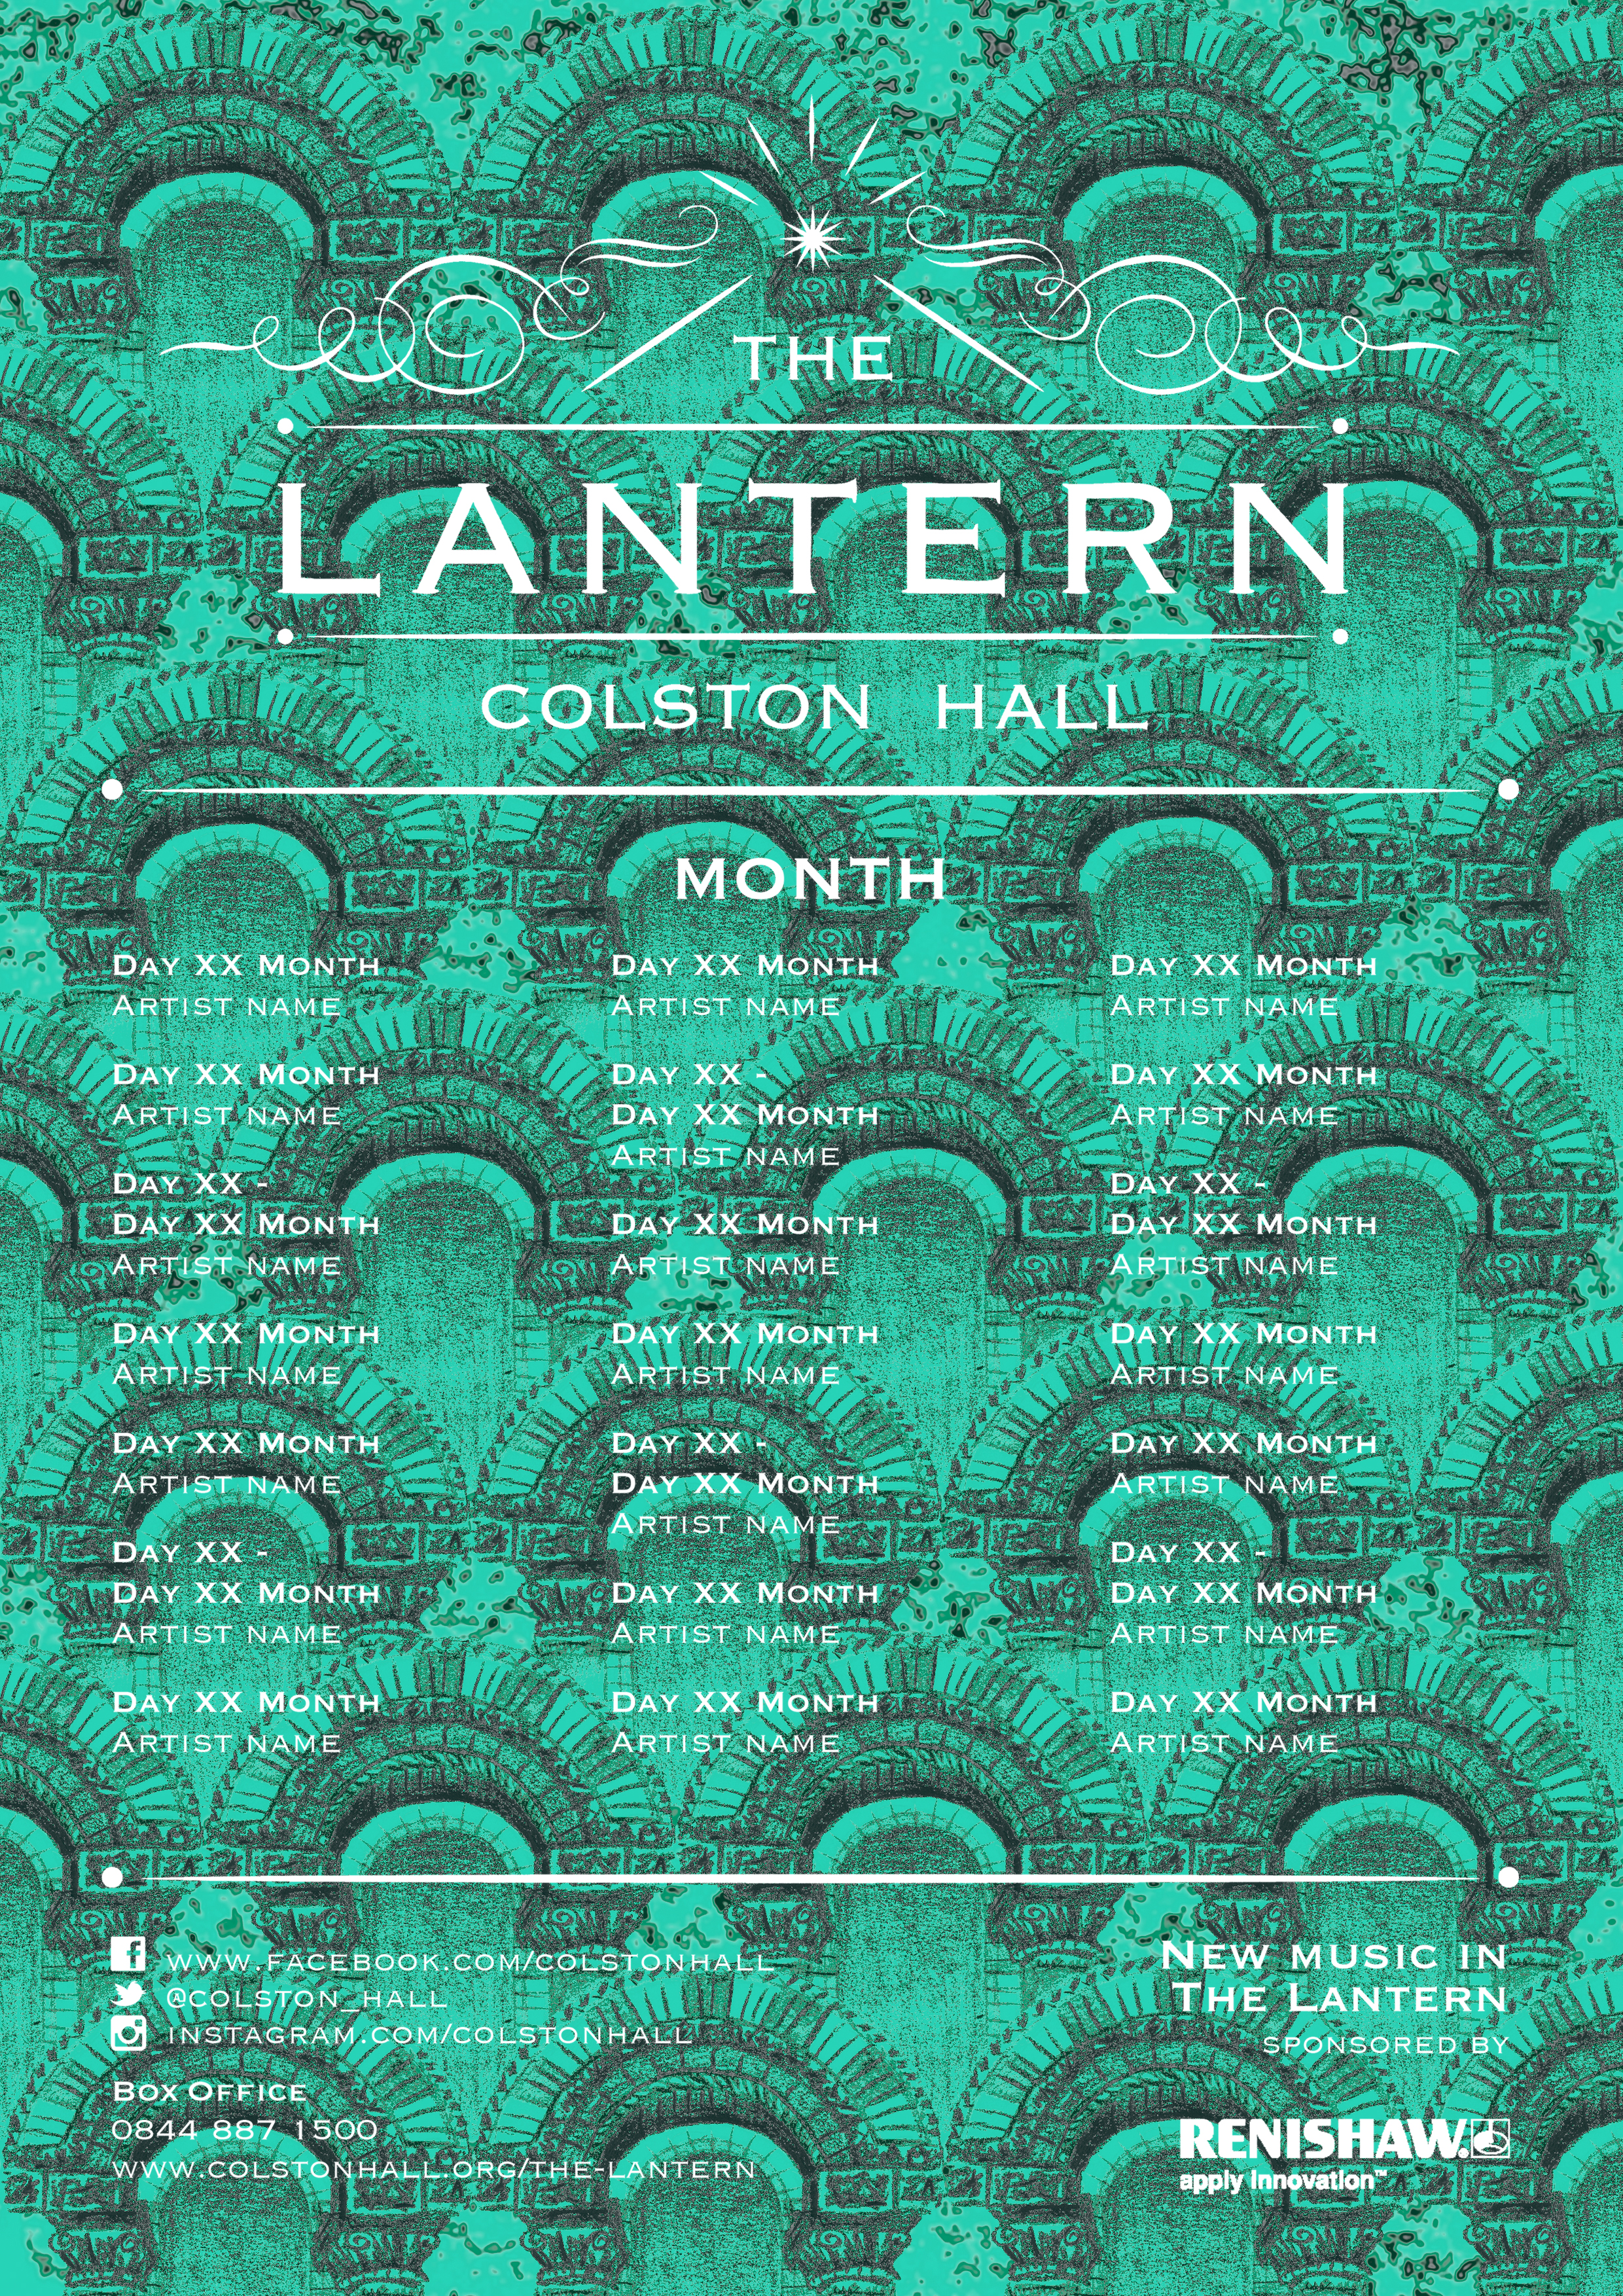 Colston hall poster bluegreen with text.jpg